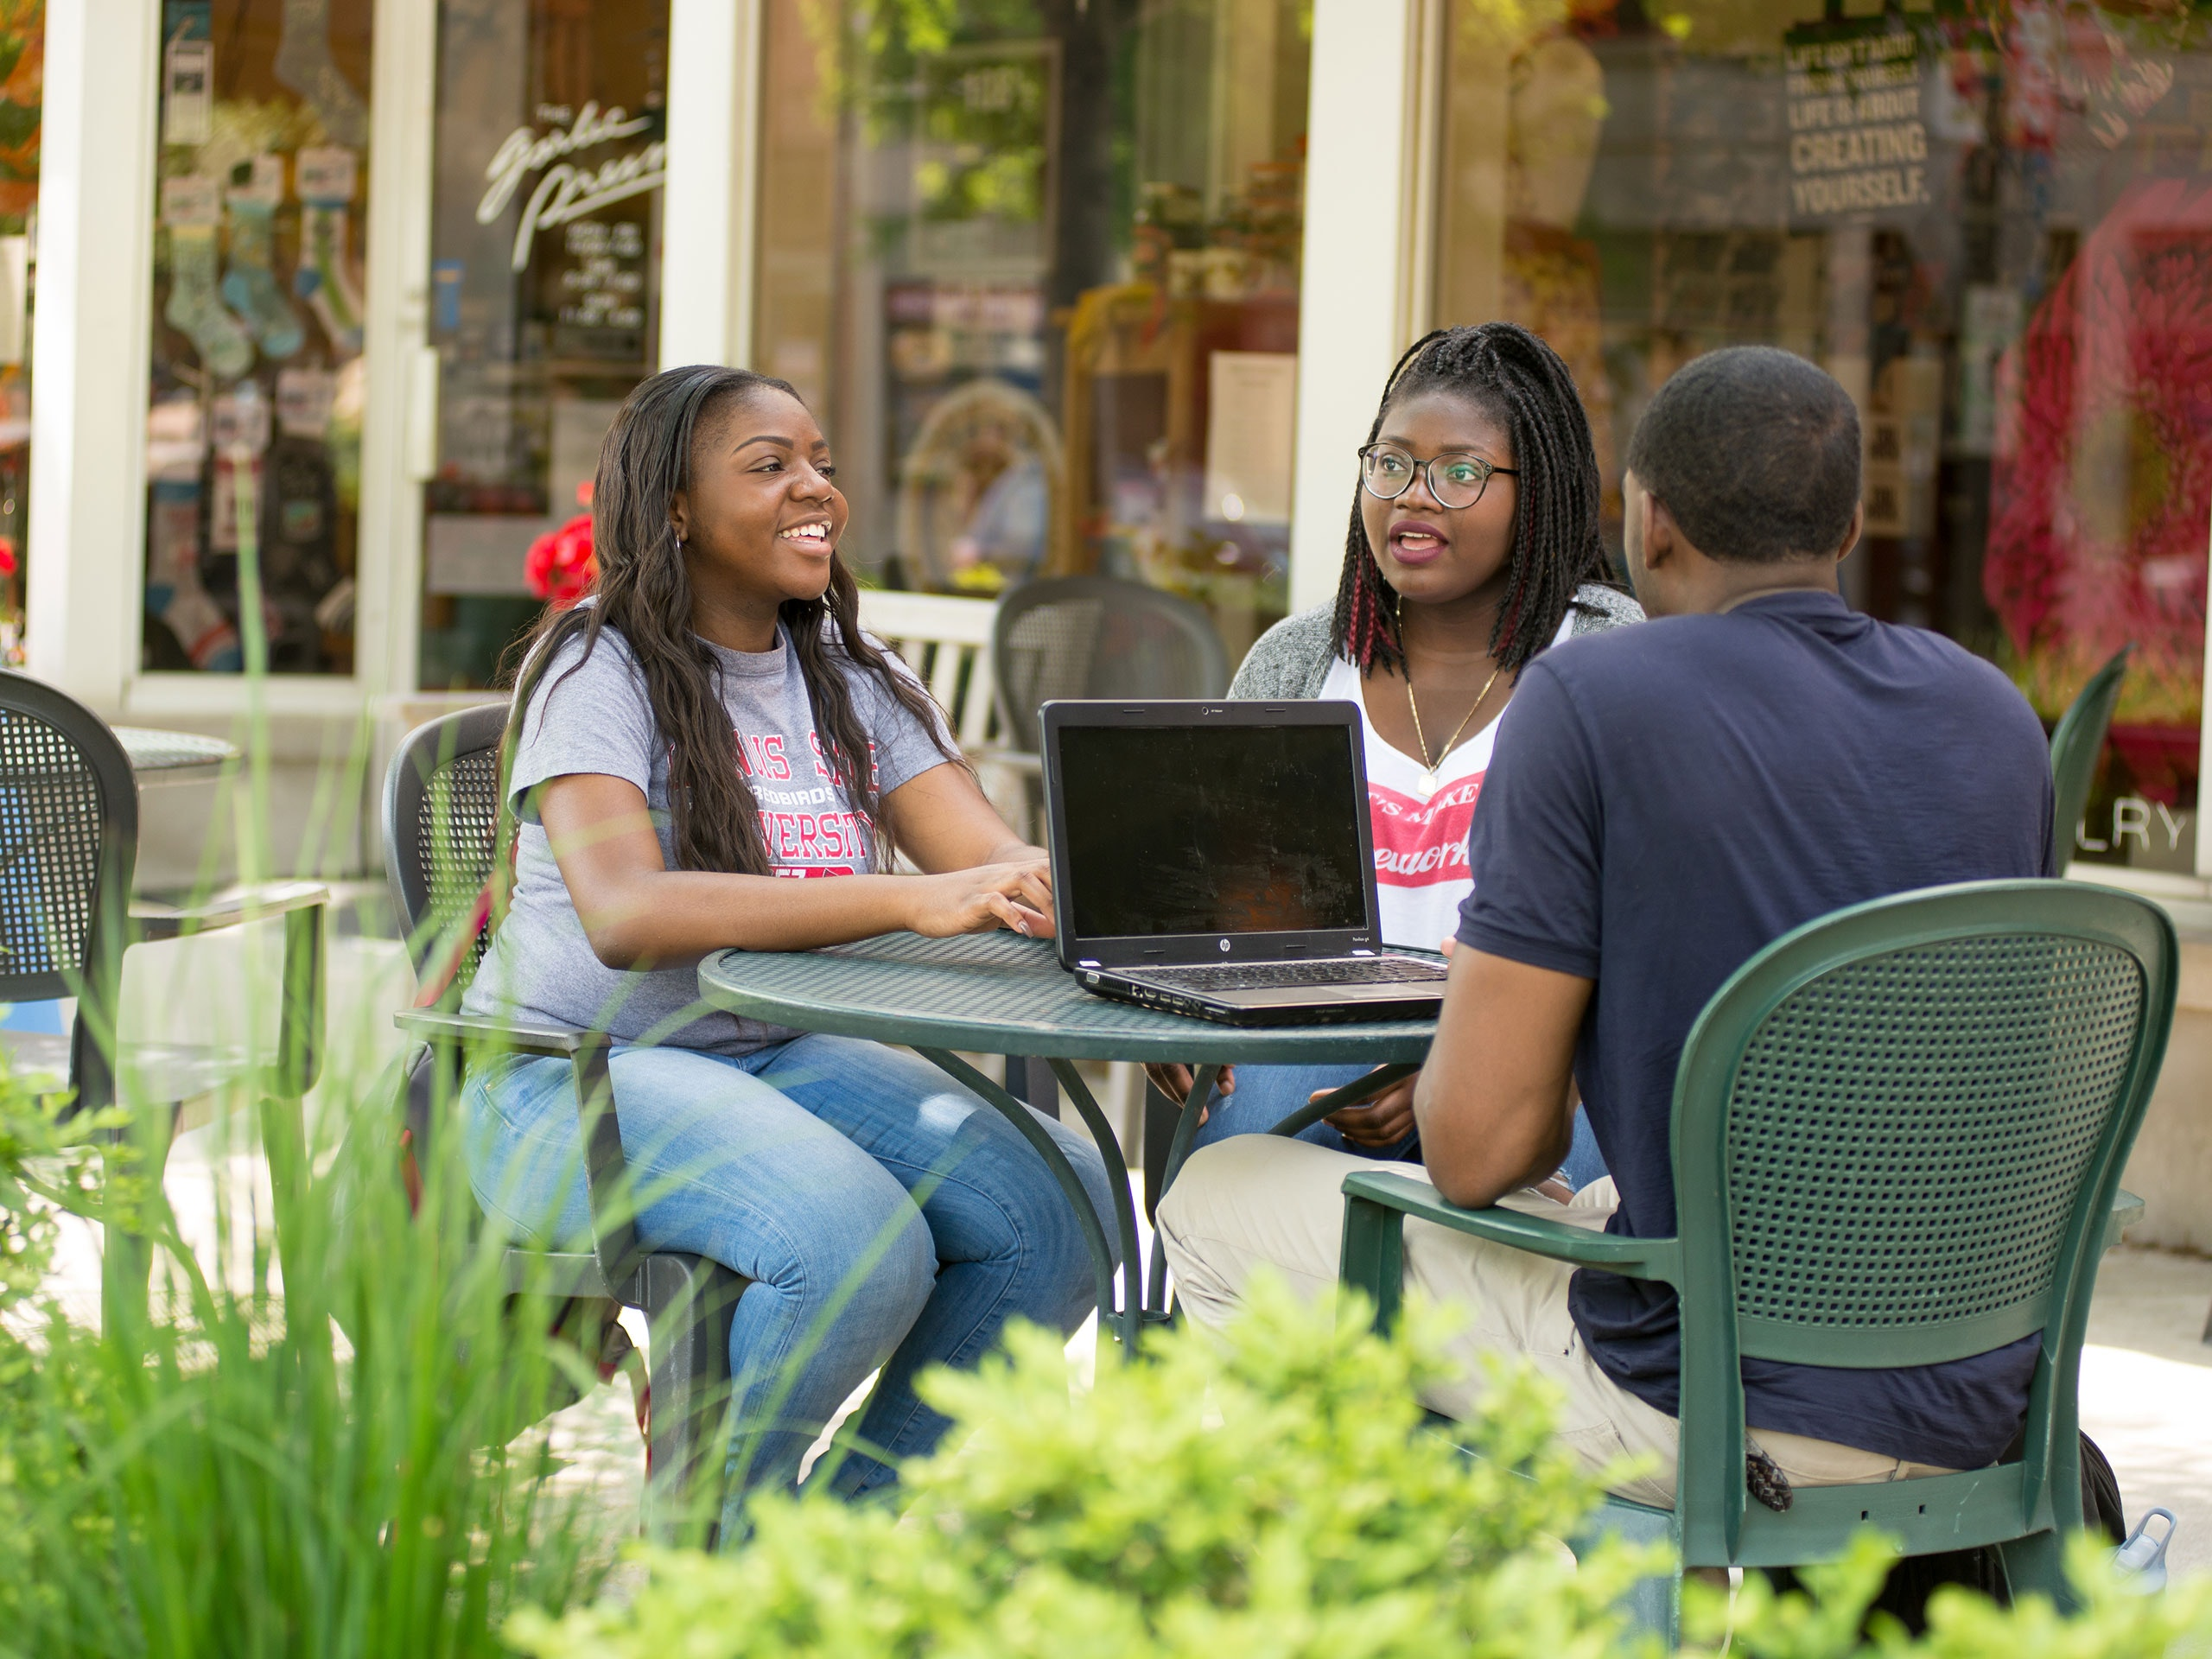 Three students sitting at an outdoor table in Uptown Normal.